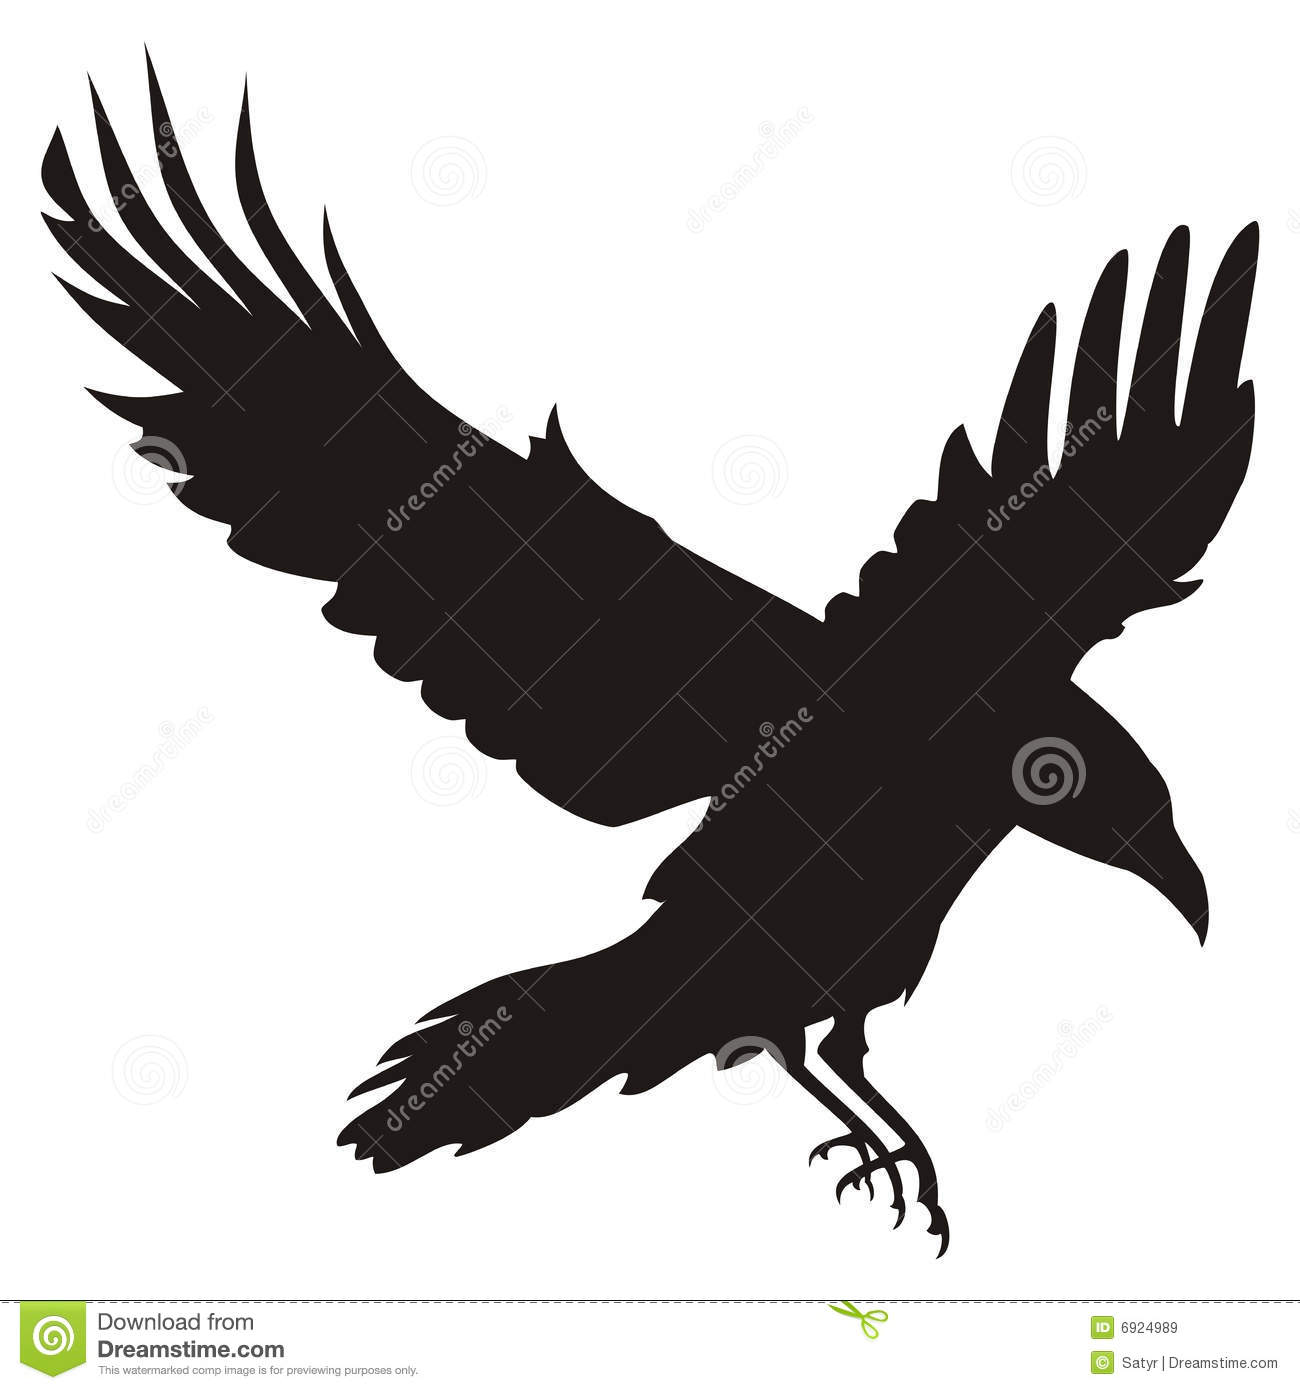 Flying Raven Royalty Free Stock Images - Image: 6924989